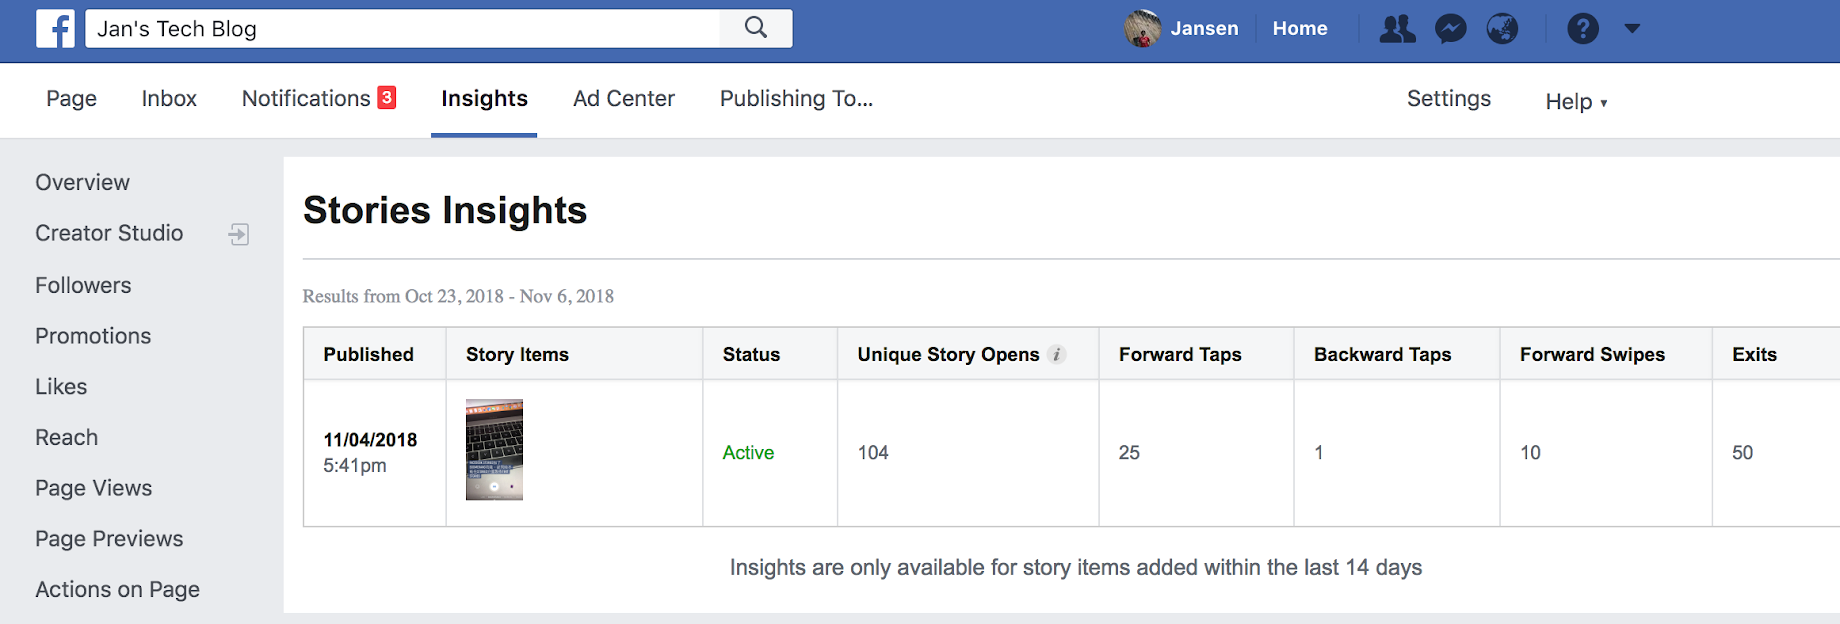 Facebook Page Insights內有Stories Insights